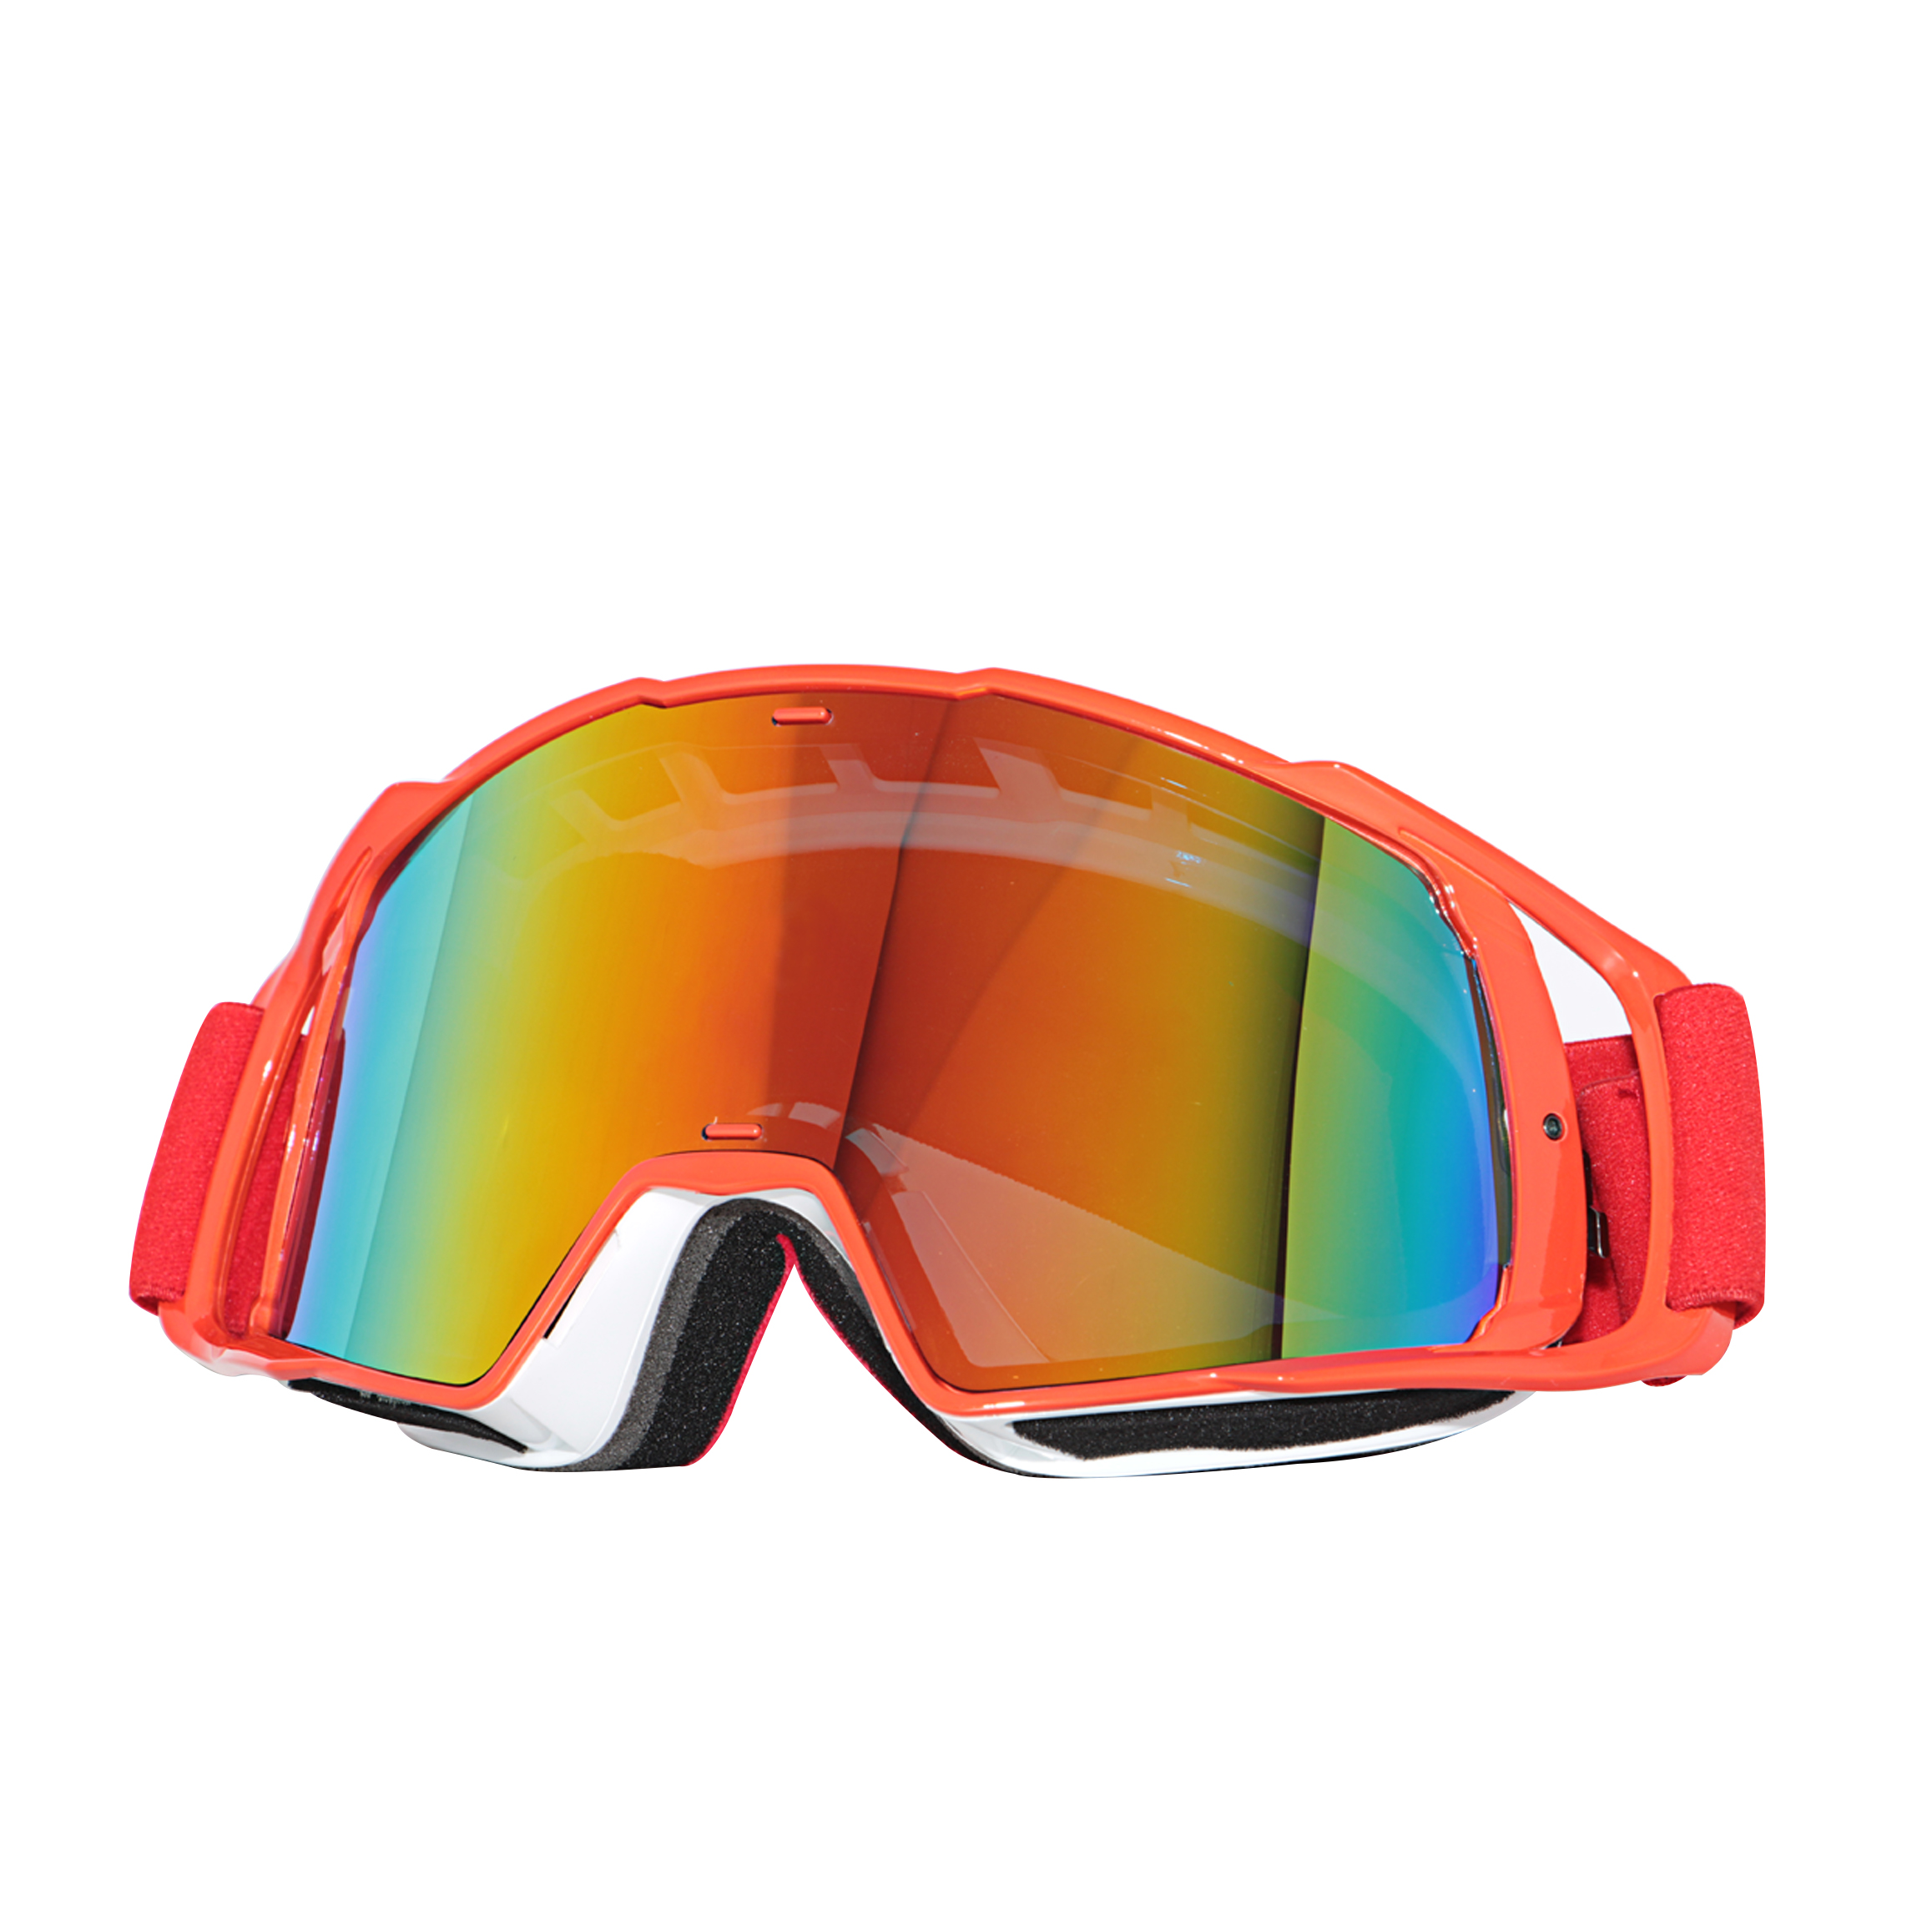 2Tnoz new fashion motorcycle colorful lens glasses dust proof